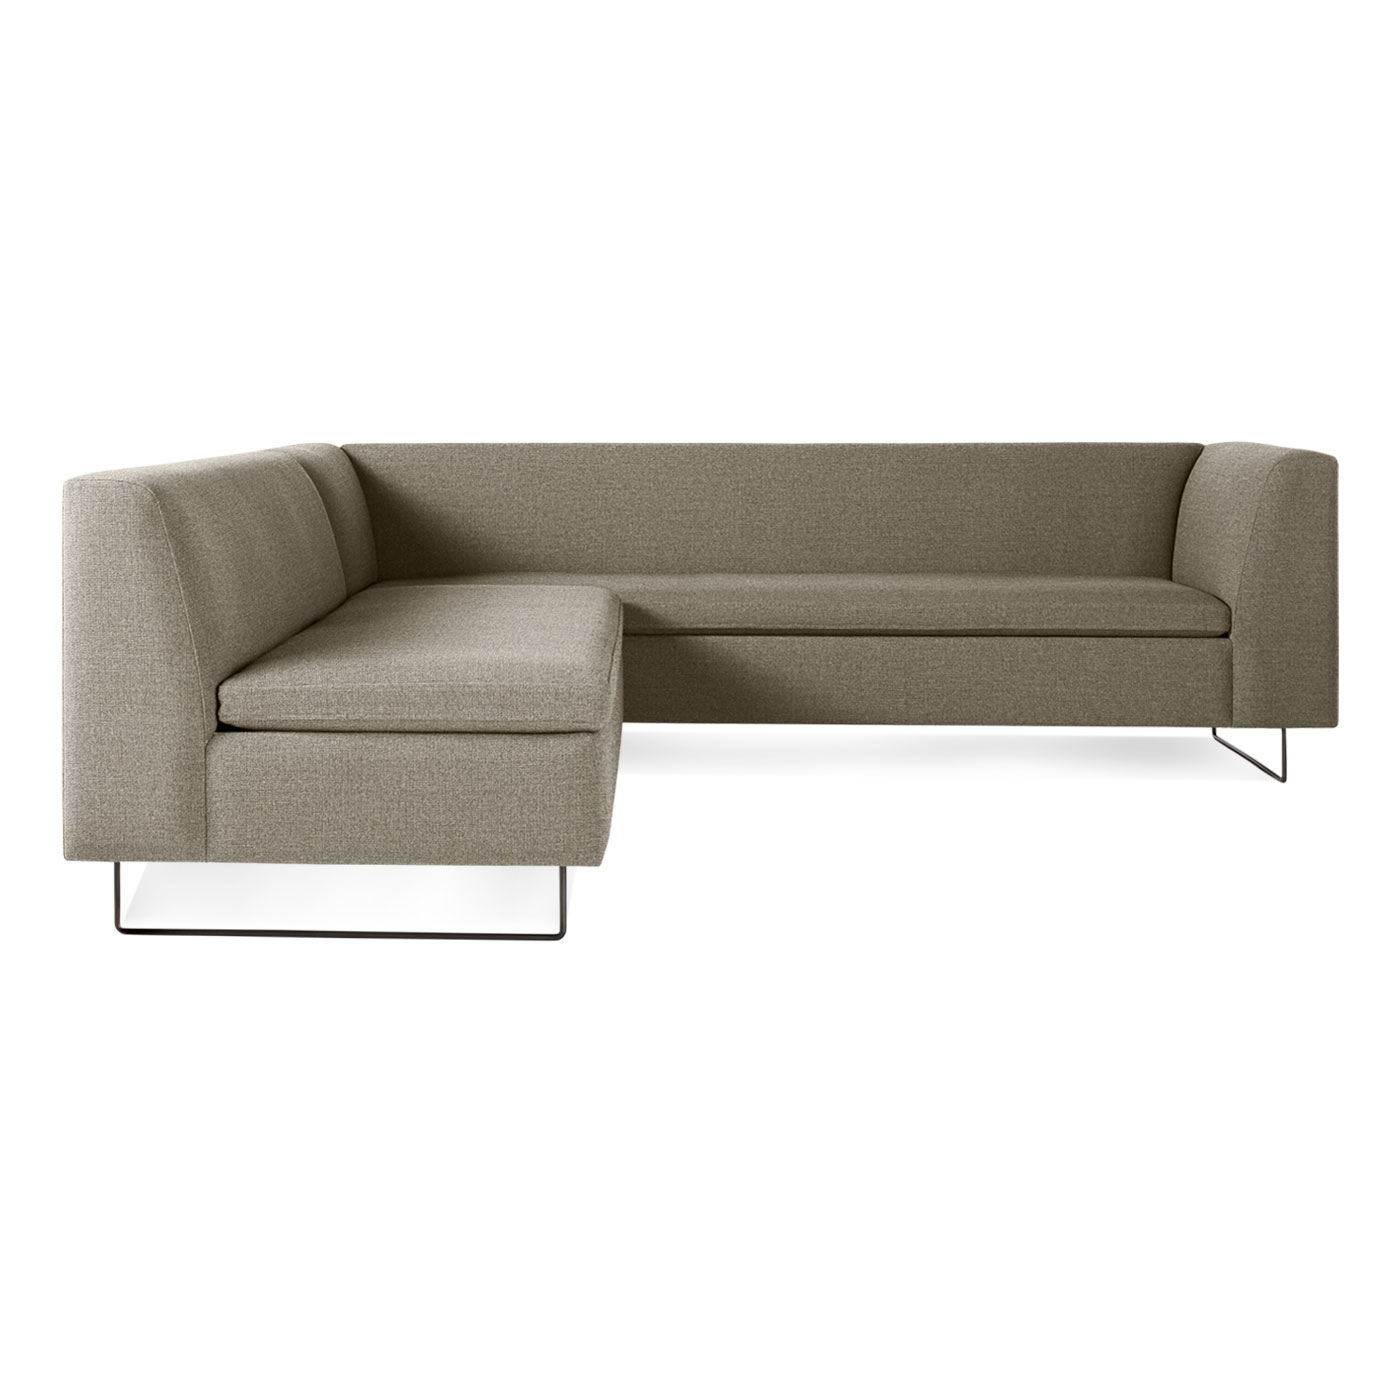 Blu Dot Throughout Newfoundland Sectional Sofas (View 3 of 20)